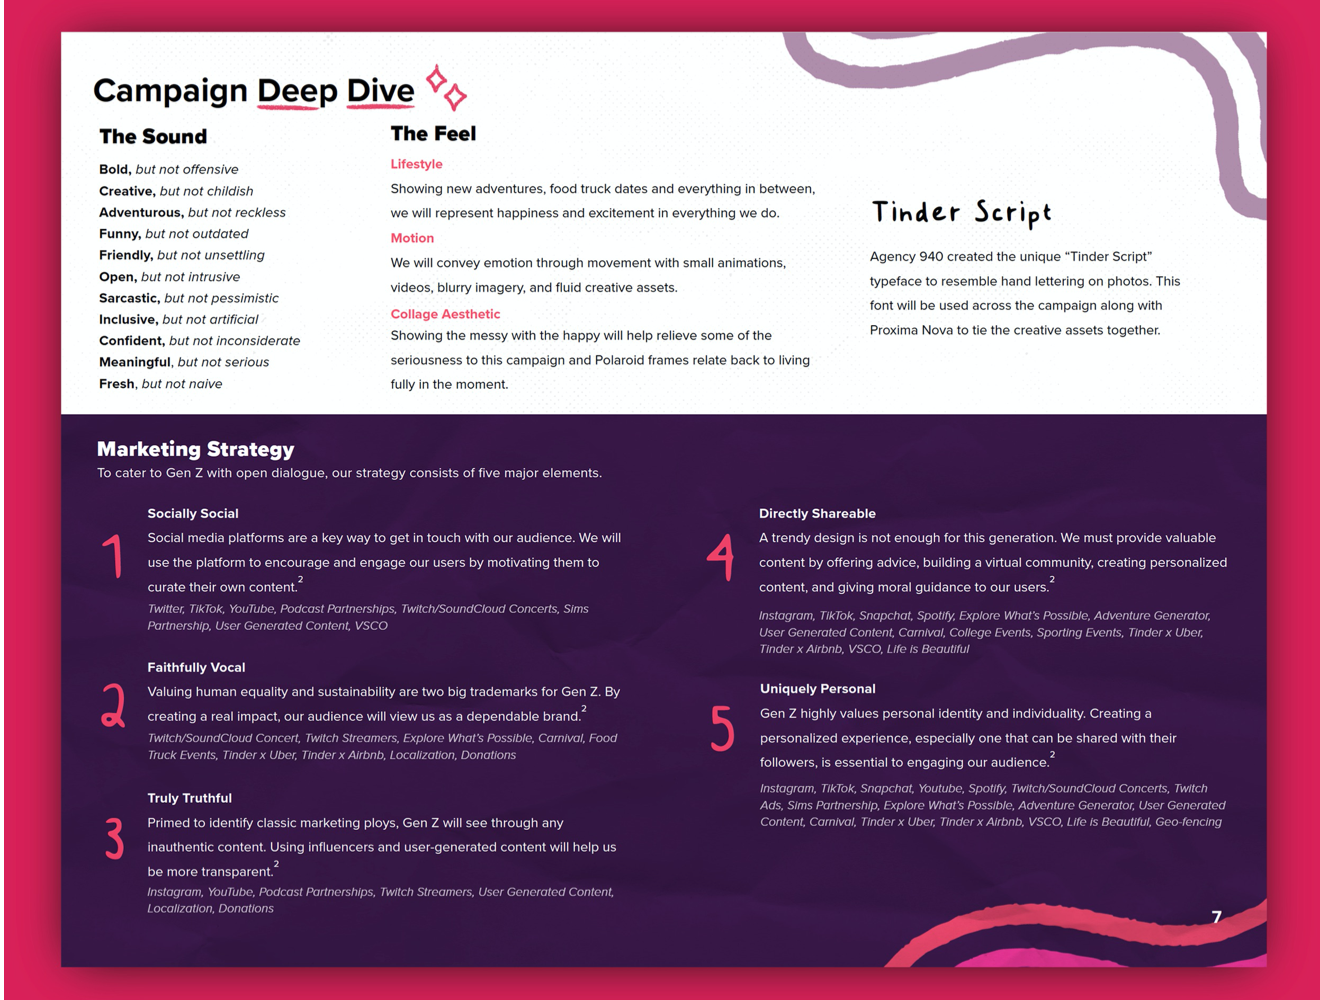 A page showing excellent copywriting and editing abilities that fit within the style of the Tinder plans book